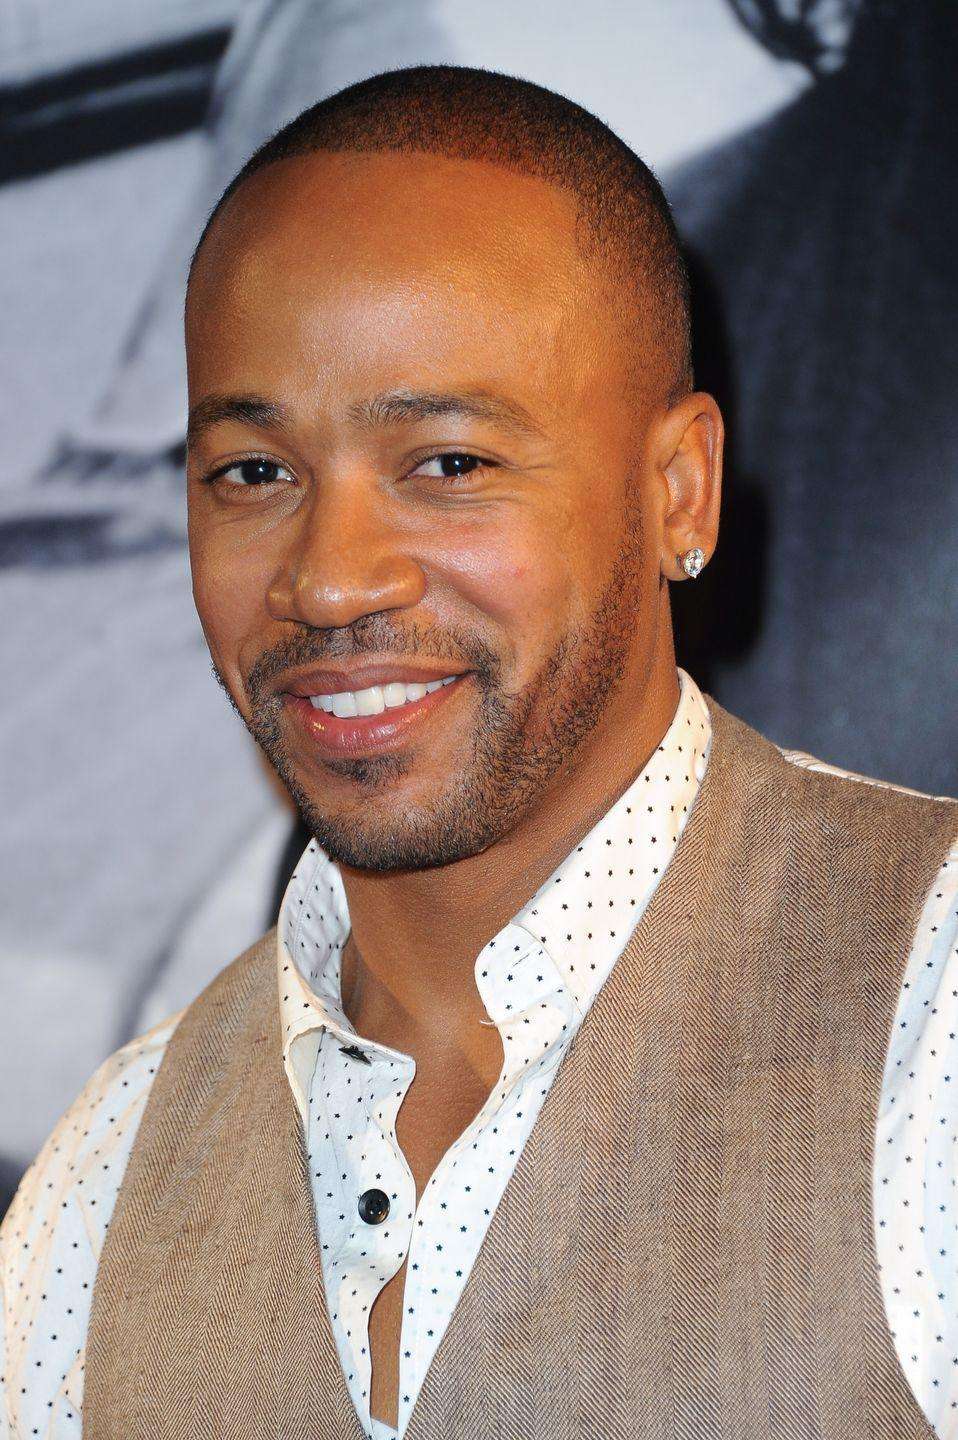 "<p>Columbus Short didn't exactly <em>ask</em> to be killed off of ABC's hit show, but an arrest and multiple charges against him made it tricky for him to film the series. So showrunner Shonda Rhimes decided to have his murder revealed in the season 4 premiere. Years later, Short opened up about the ordeal. ""I had a lot on my plate, and you know, I was using unhealthy ways to kind of self-medicate and deal with a lot of heavy duty stuff in my life, Short told <em><a href=""https://people.com/crime/ex-scandal-star-columbus-short-i-was-struggling-with-drugs/"" rel=""nofollow noopener"" target=""_blank"" data-ylk=""slk:PEOPLE"" class=""link rapid-noclick-resp"">PEOPLE</a>.</em></p>"